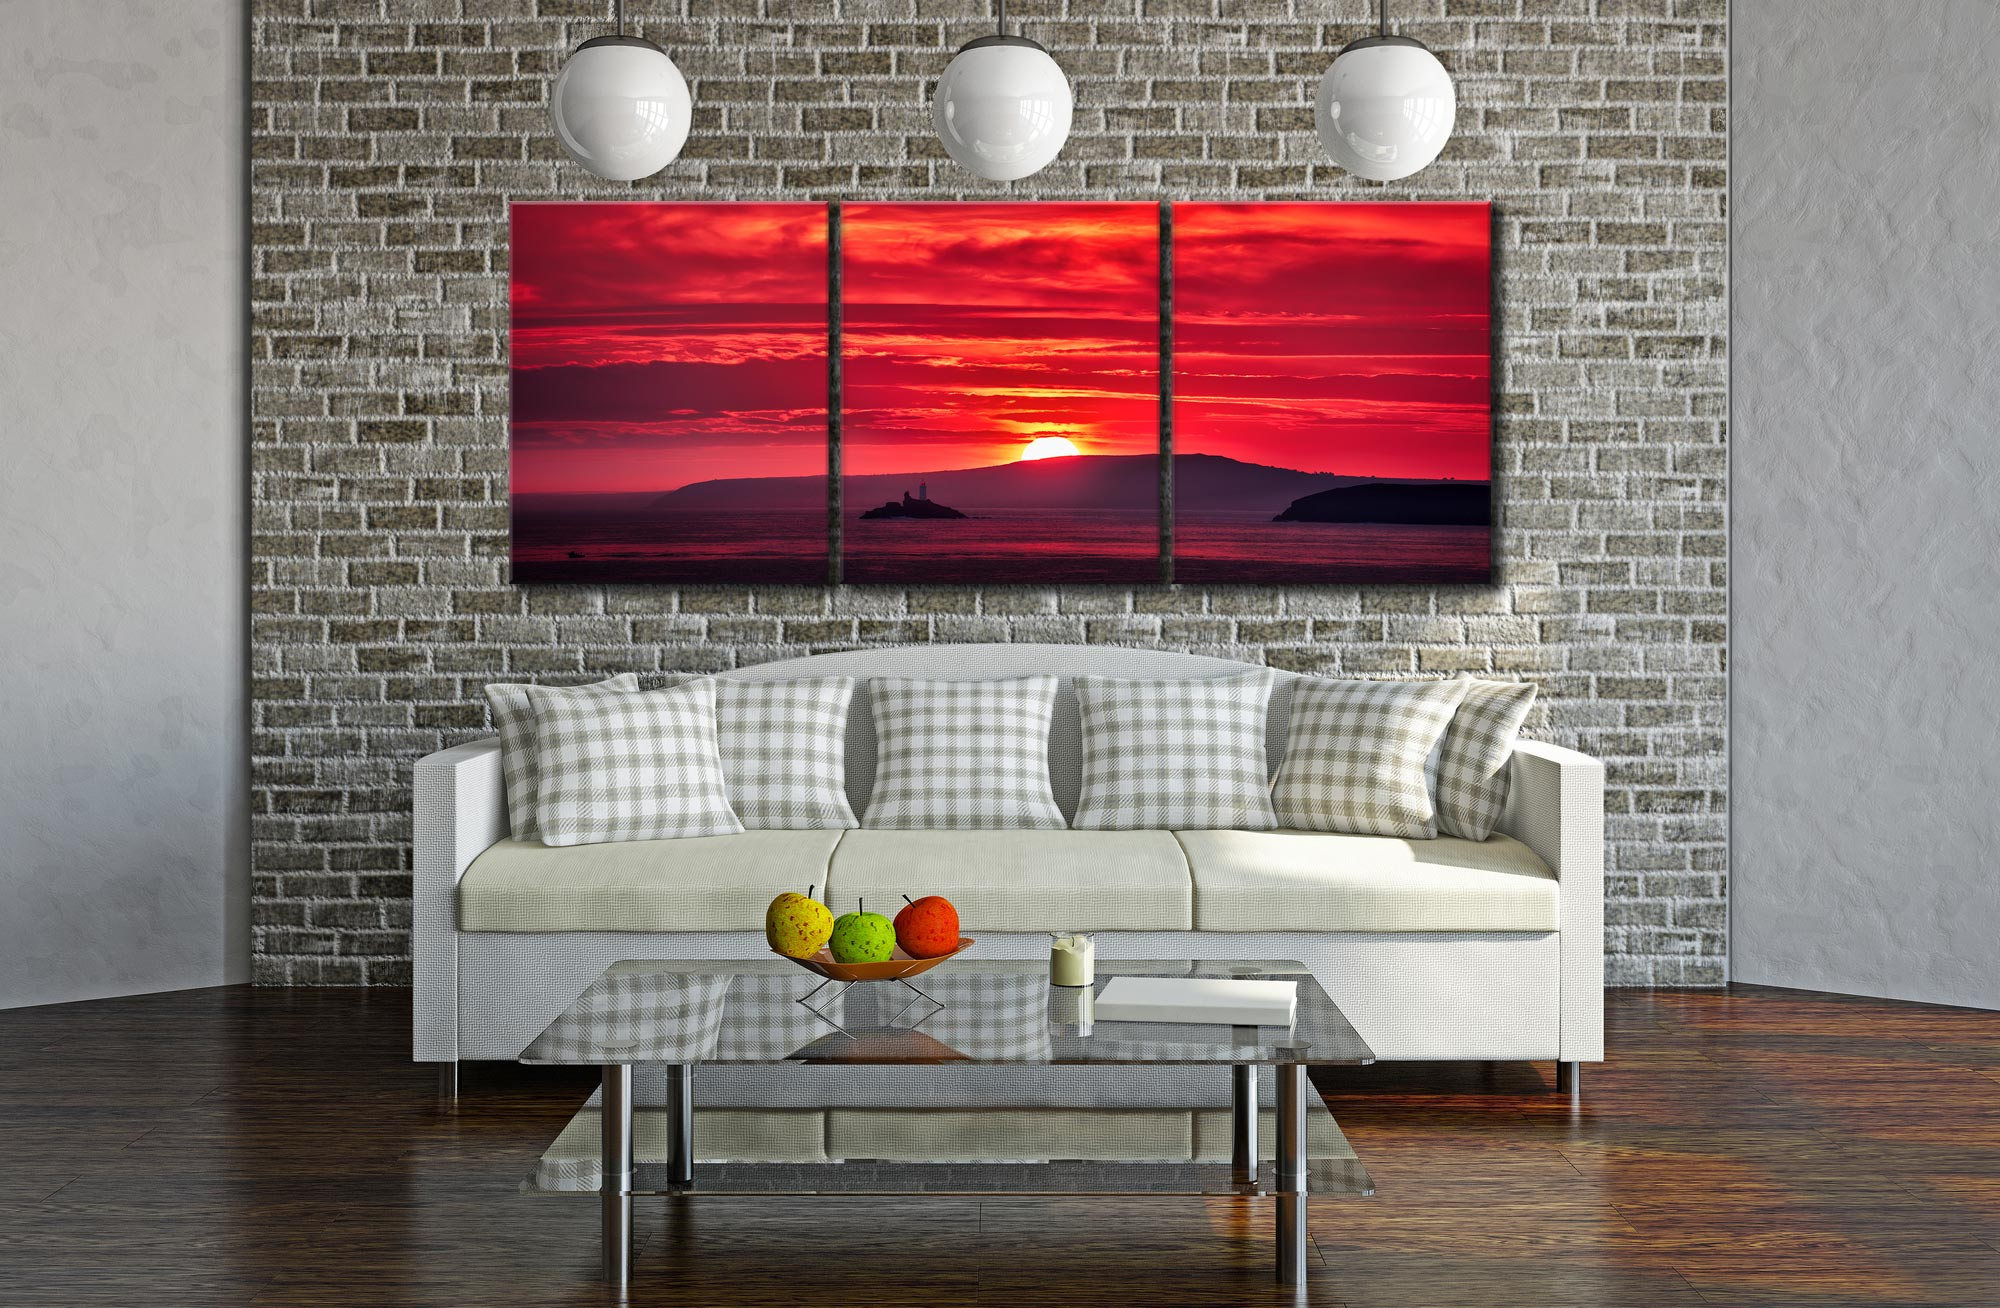 Red Sky in Morning - 3 Panel Canvas on Wall